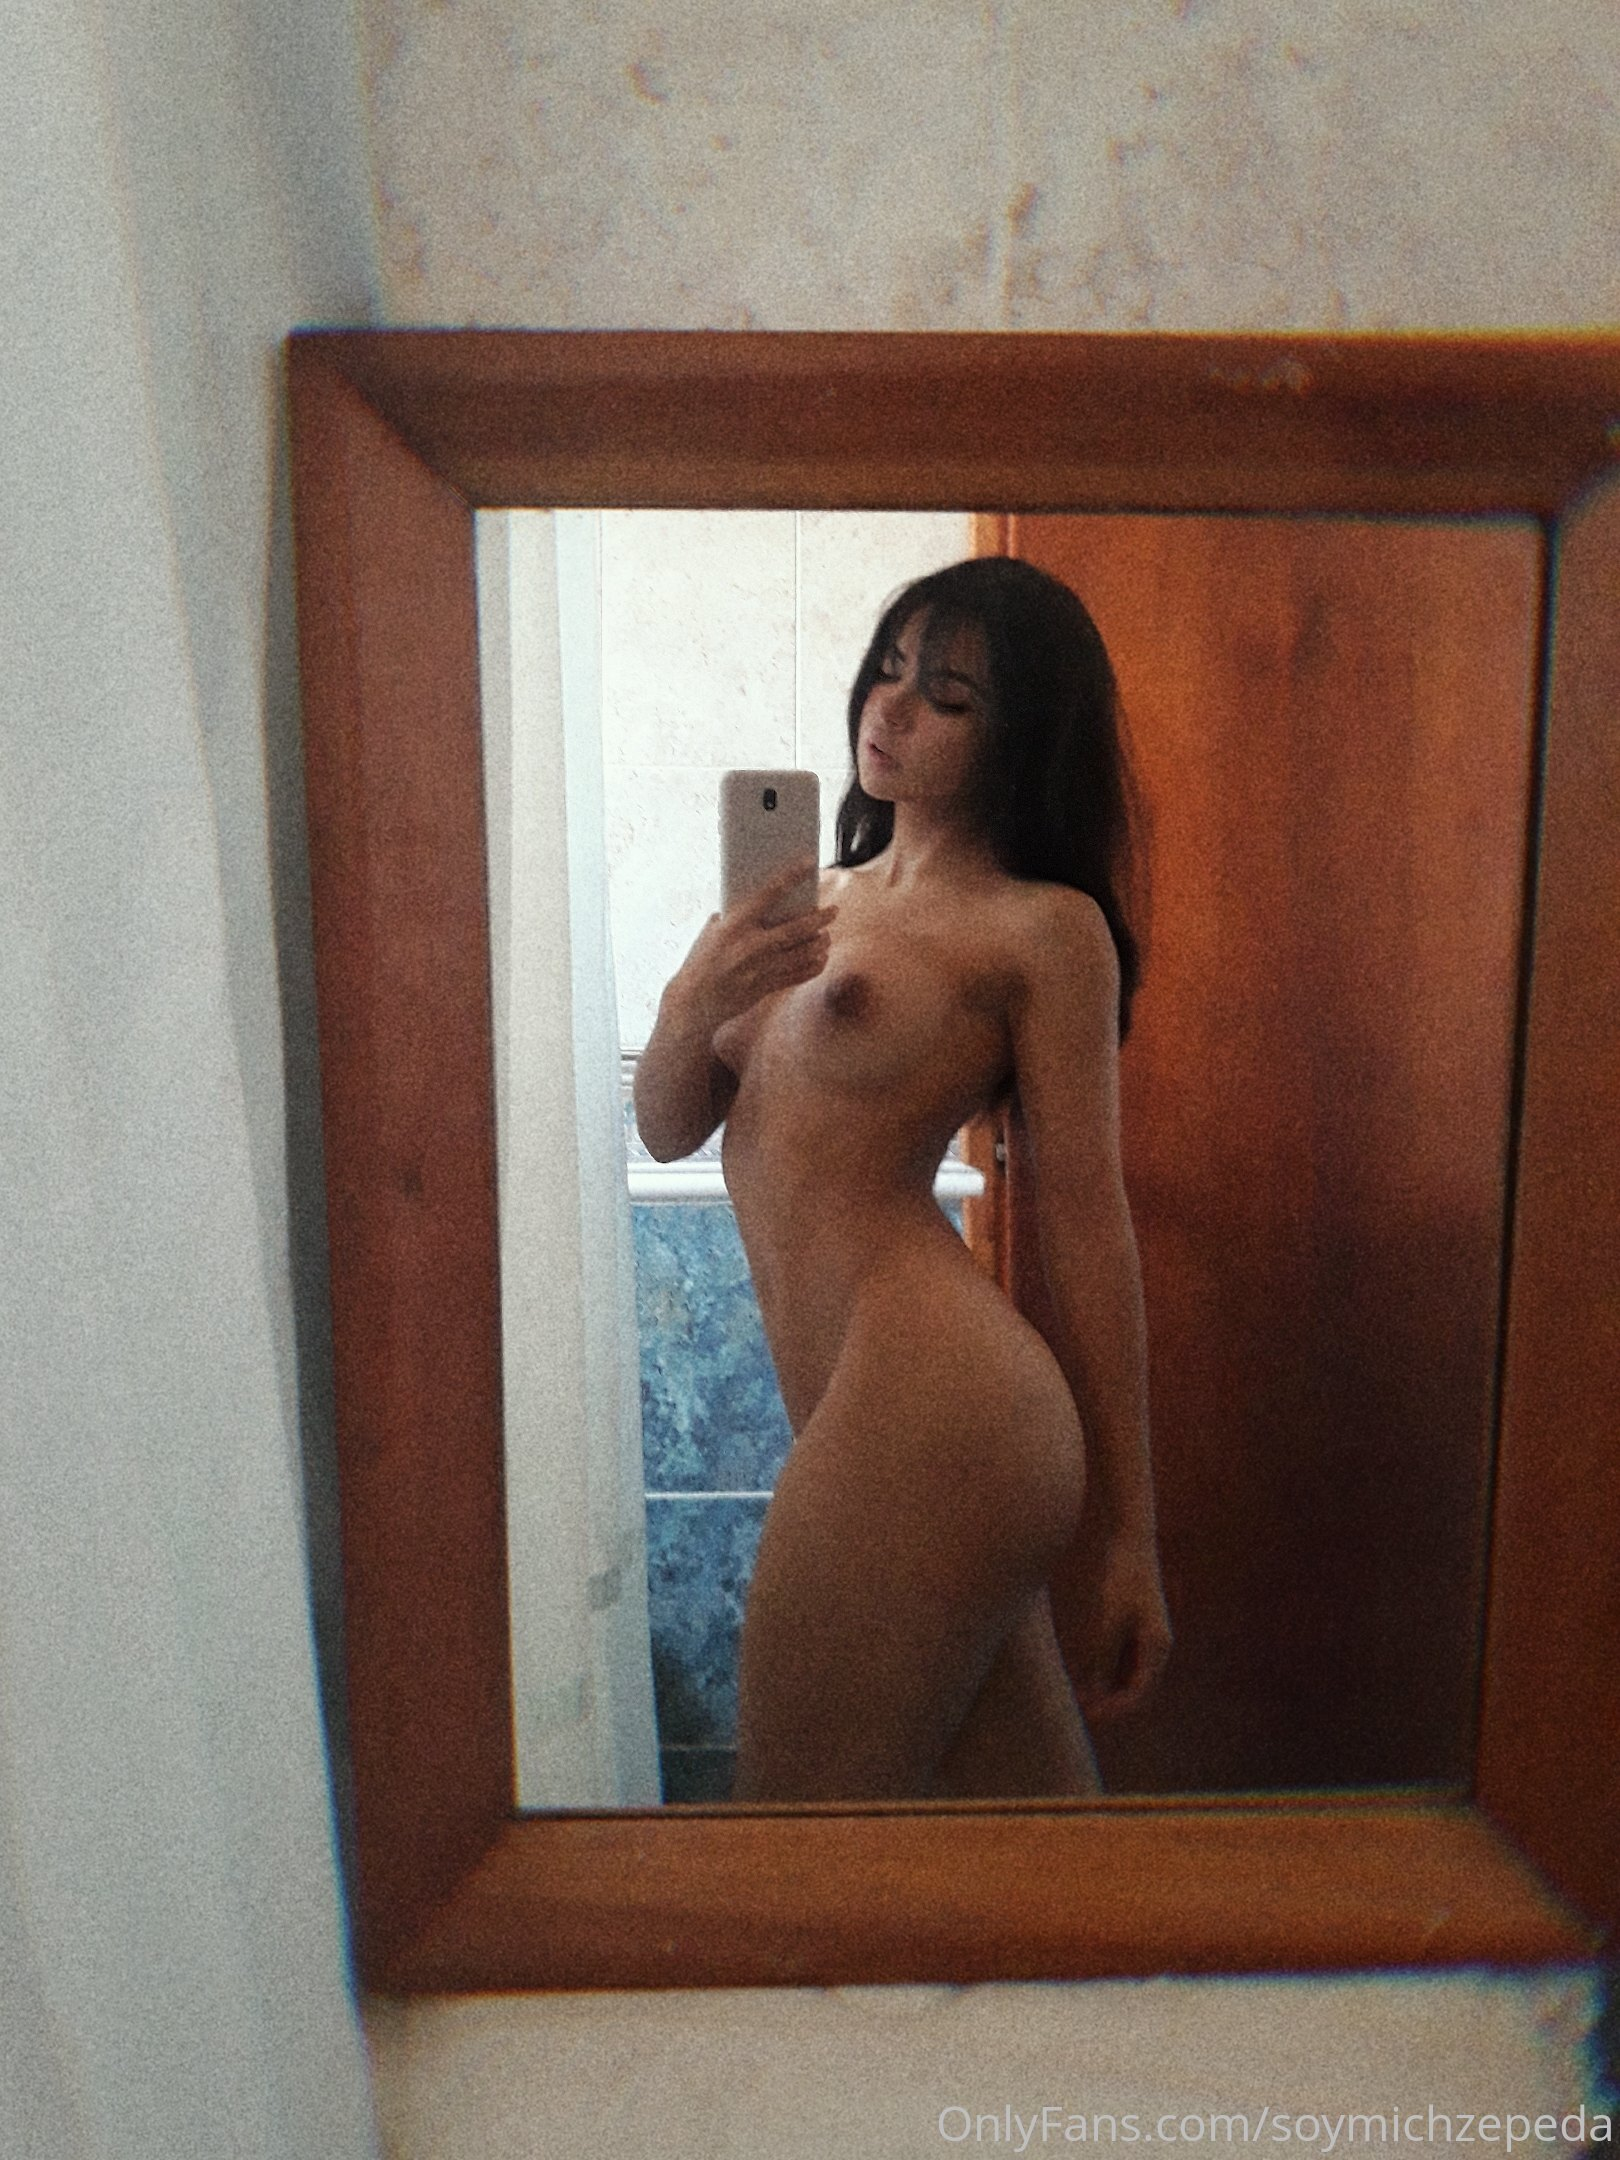 Michelle Zepeda Onlyfans Nude Gallery Leaked